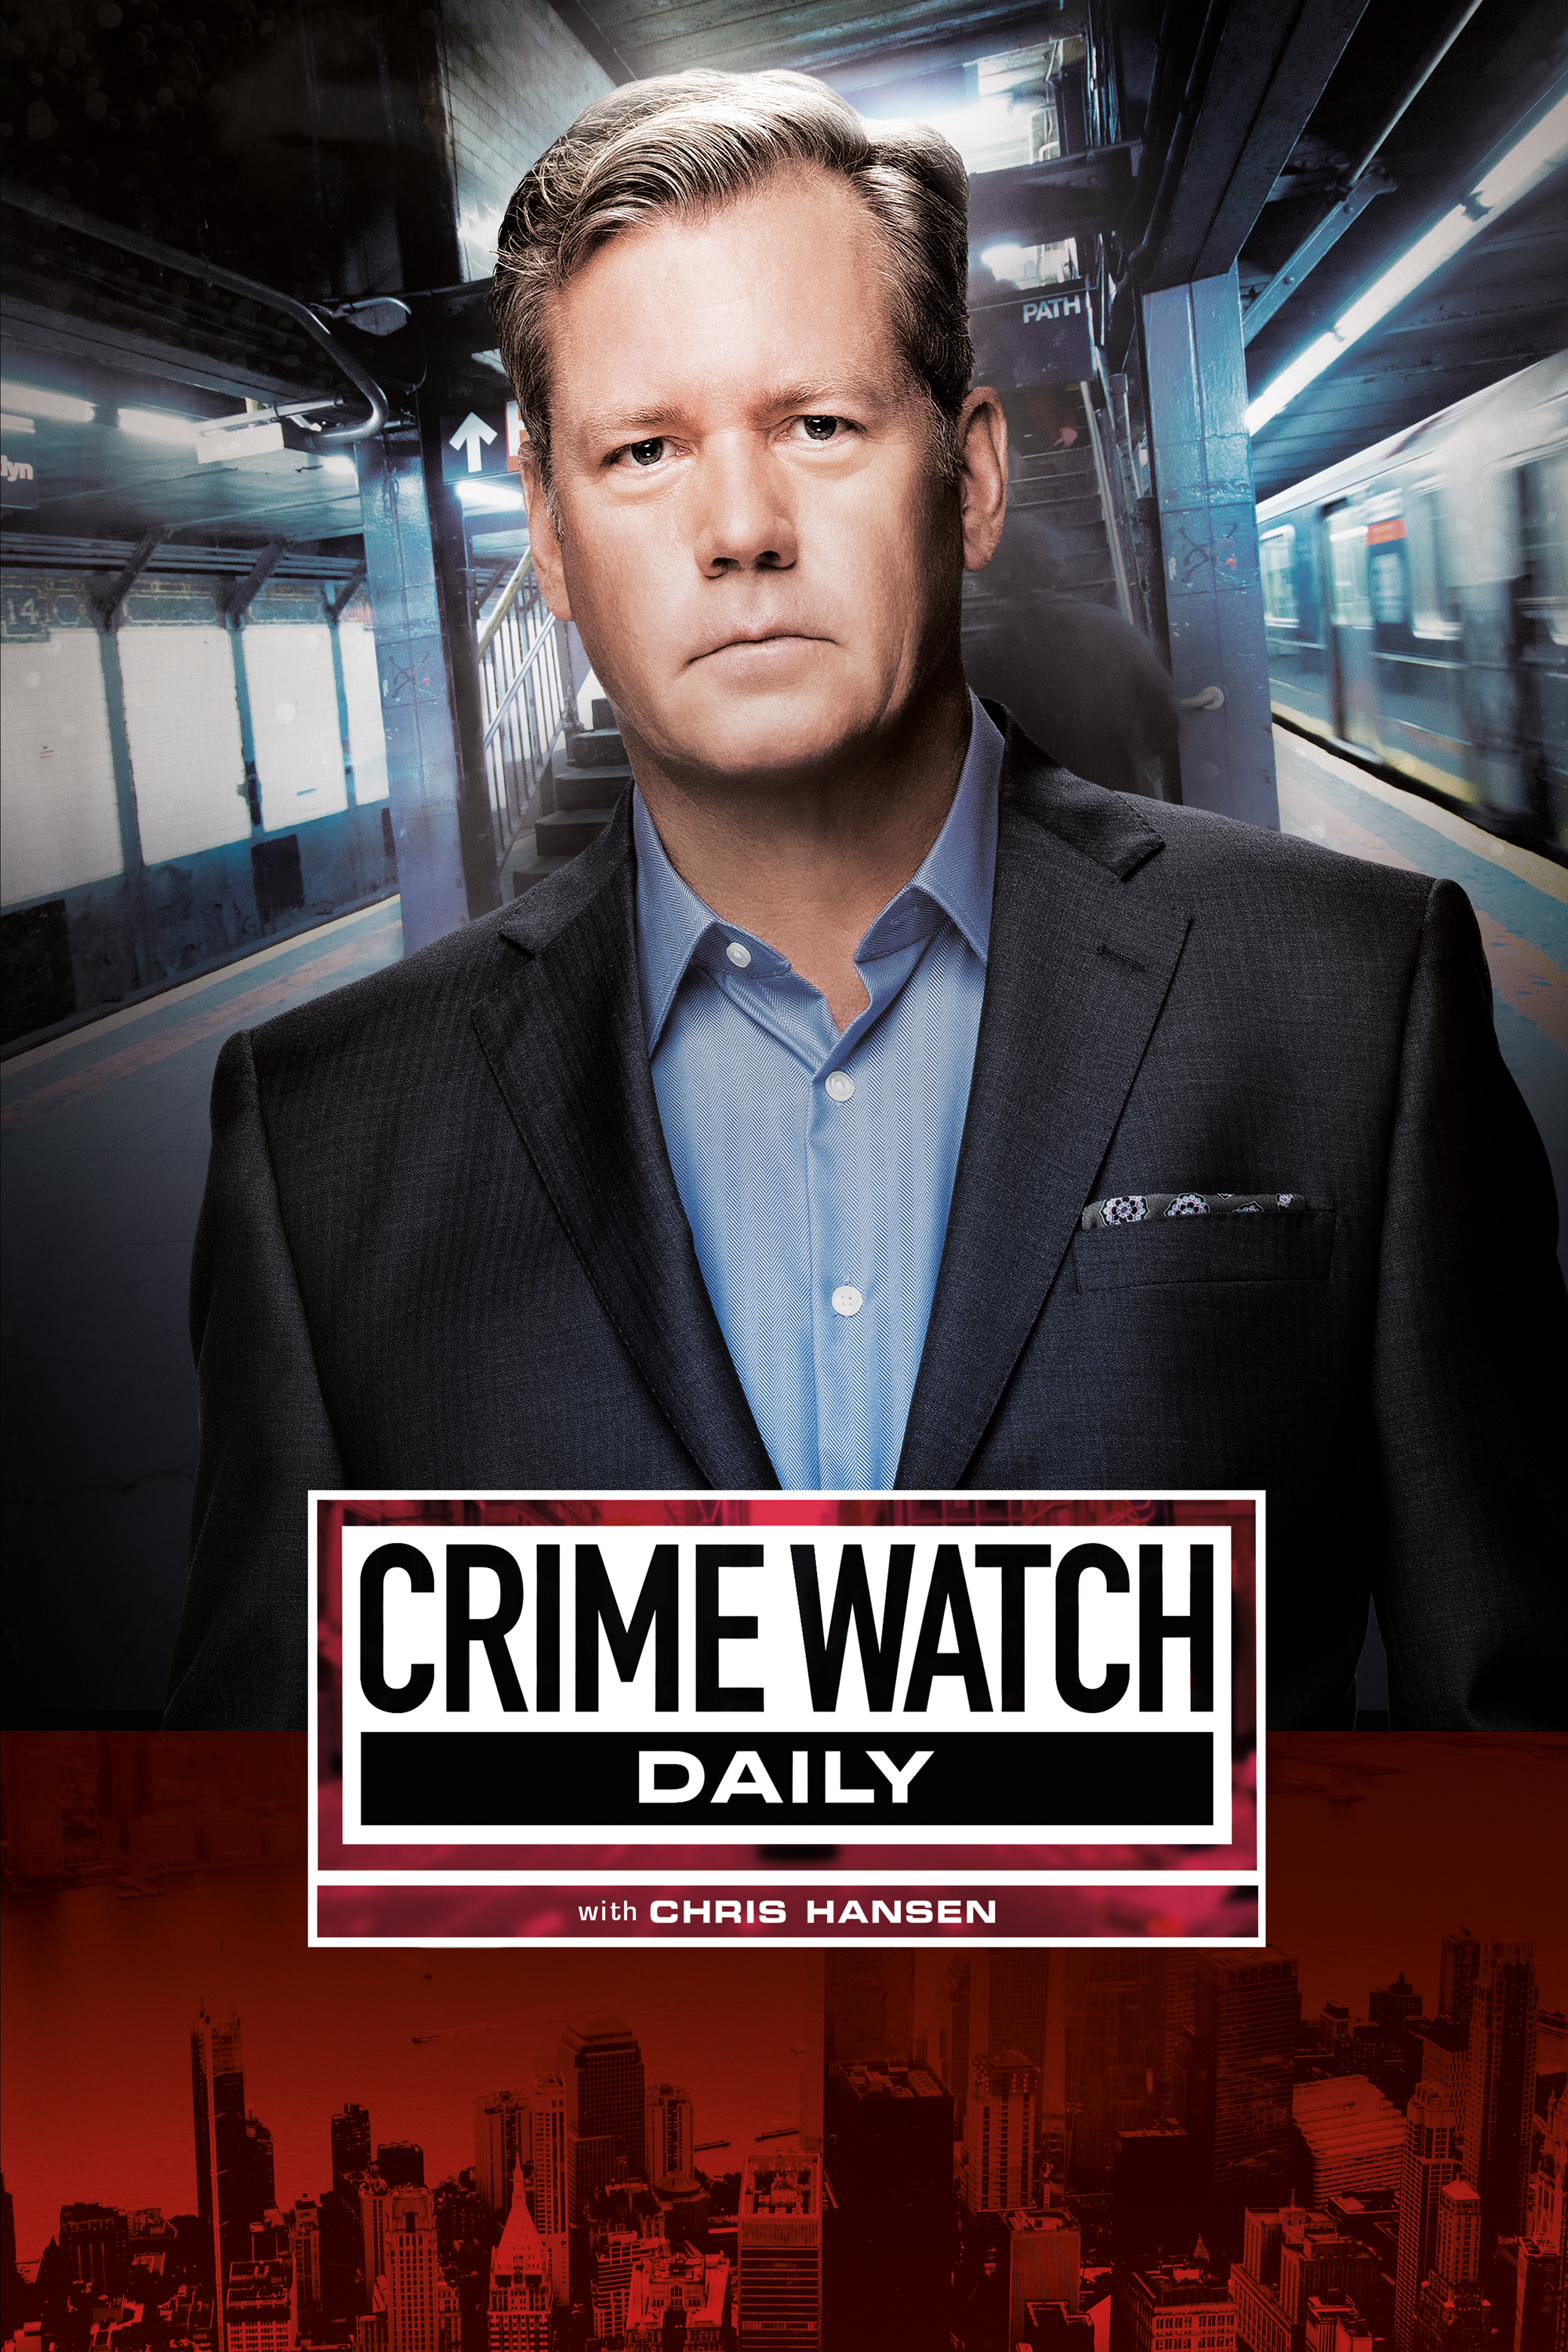 crime_watch_daily_with_chris_hansen_keyart2_2000x3000.jpg